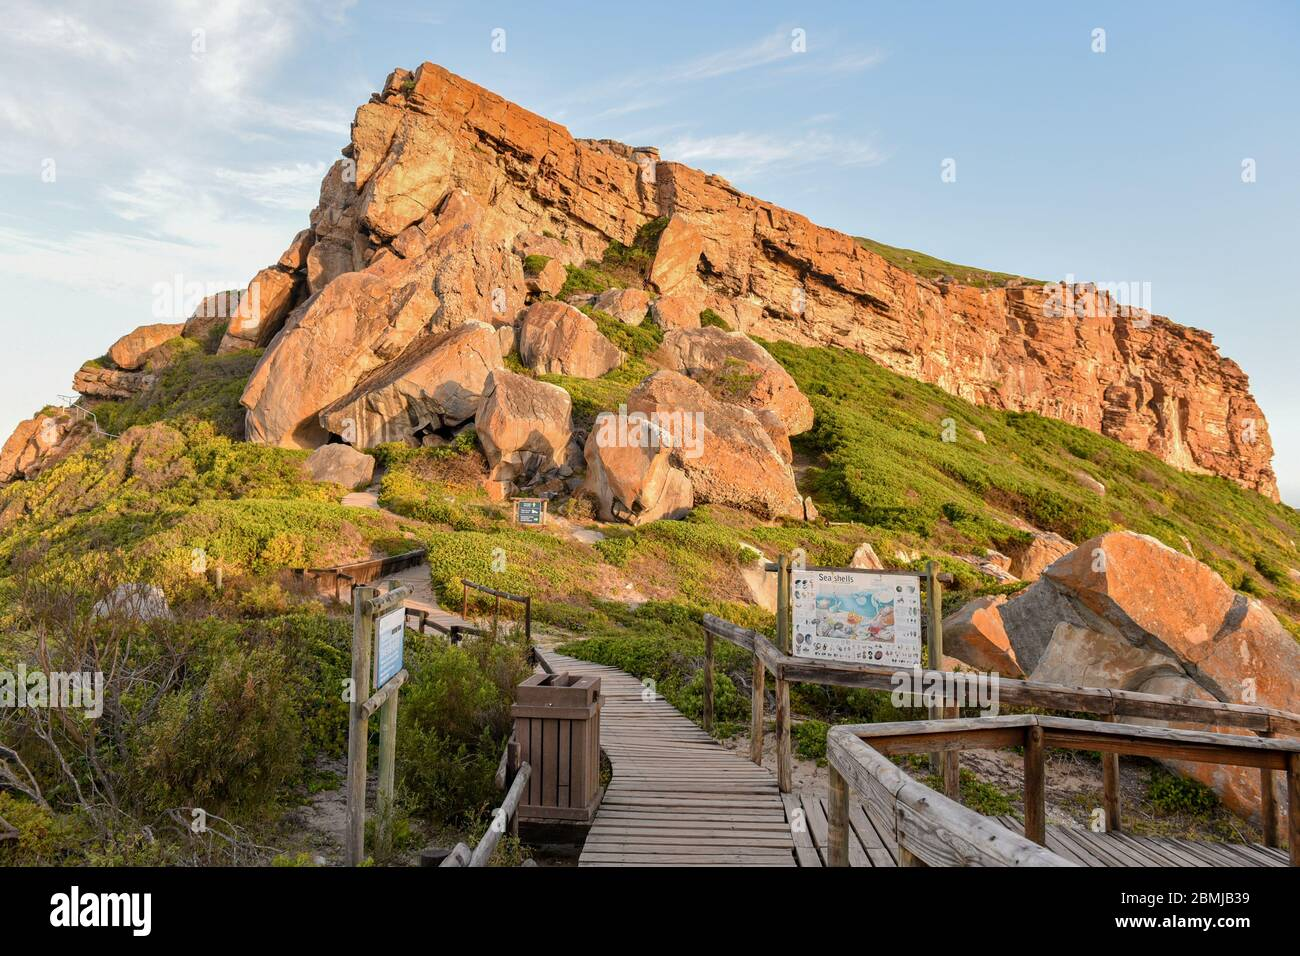 Robberg Nature Reserve is one of the top attractions near Plettenberg Bay, Garden Route, South Africa Stock Photo